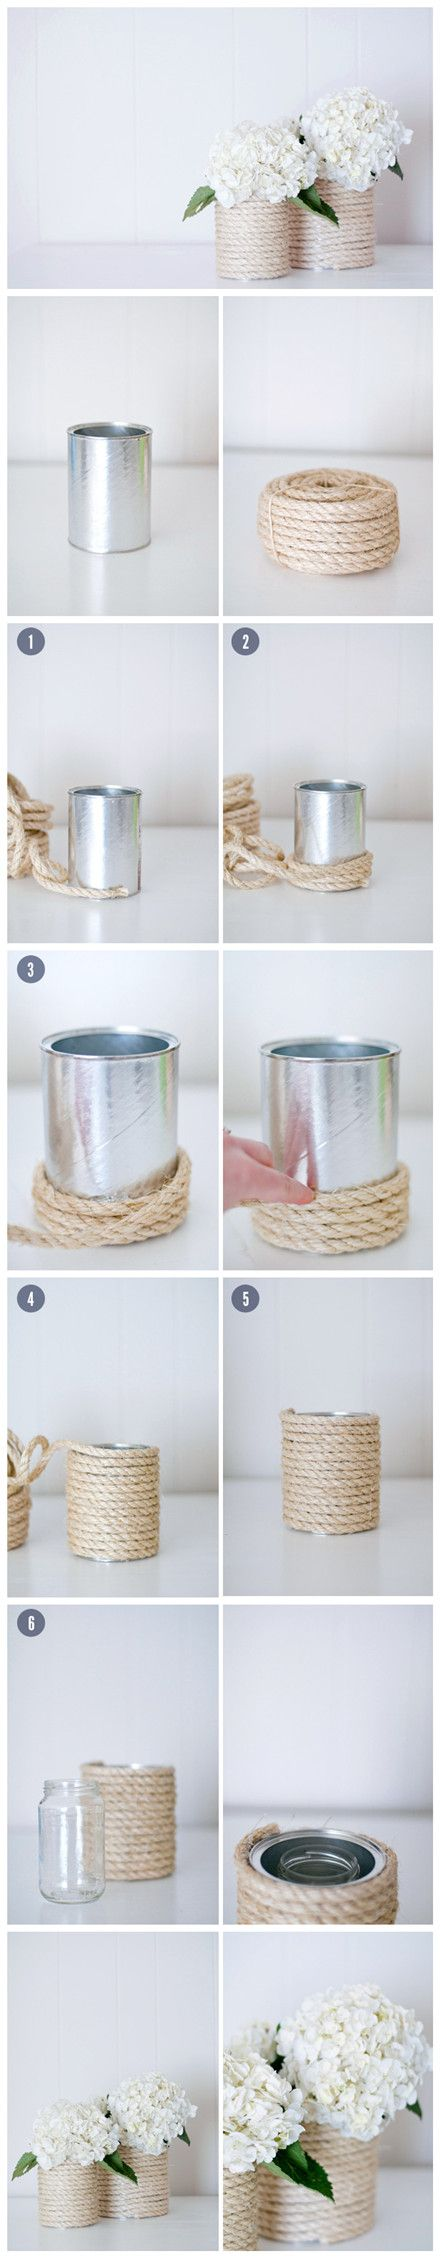 pretty diy vases: Ideas, Flowers Pots, Formula Cans, Centerpieces, Tins Cans, Diy, Ropes Vase, Crafts, Center Pieces